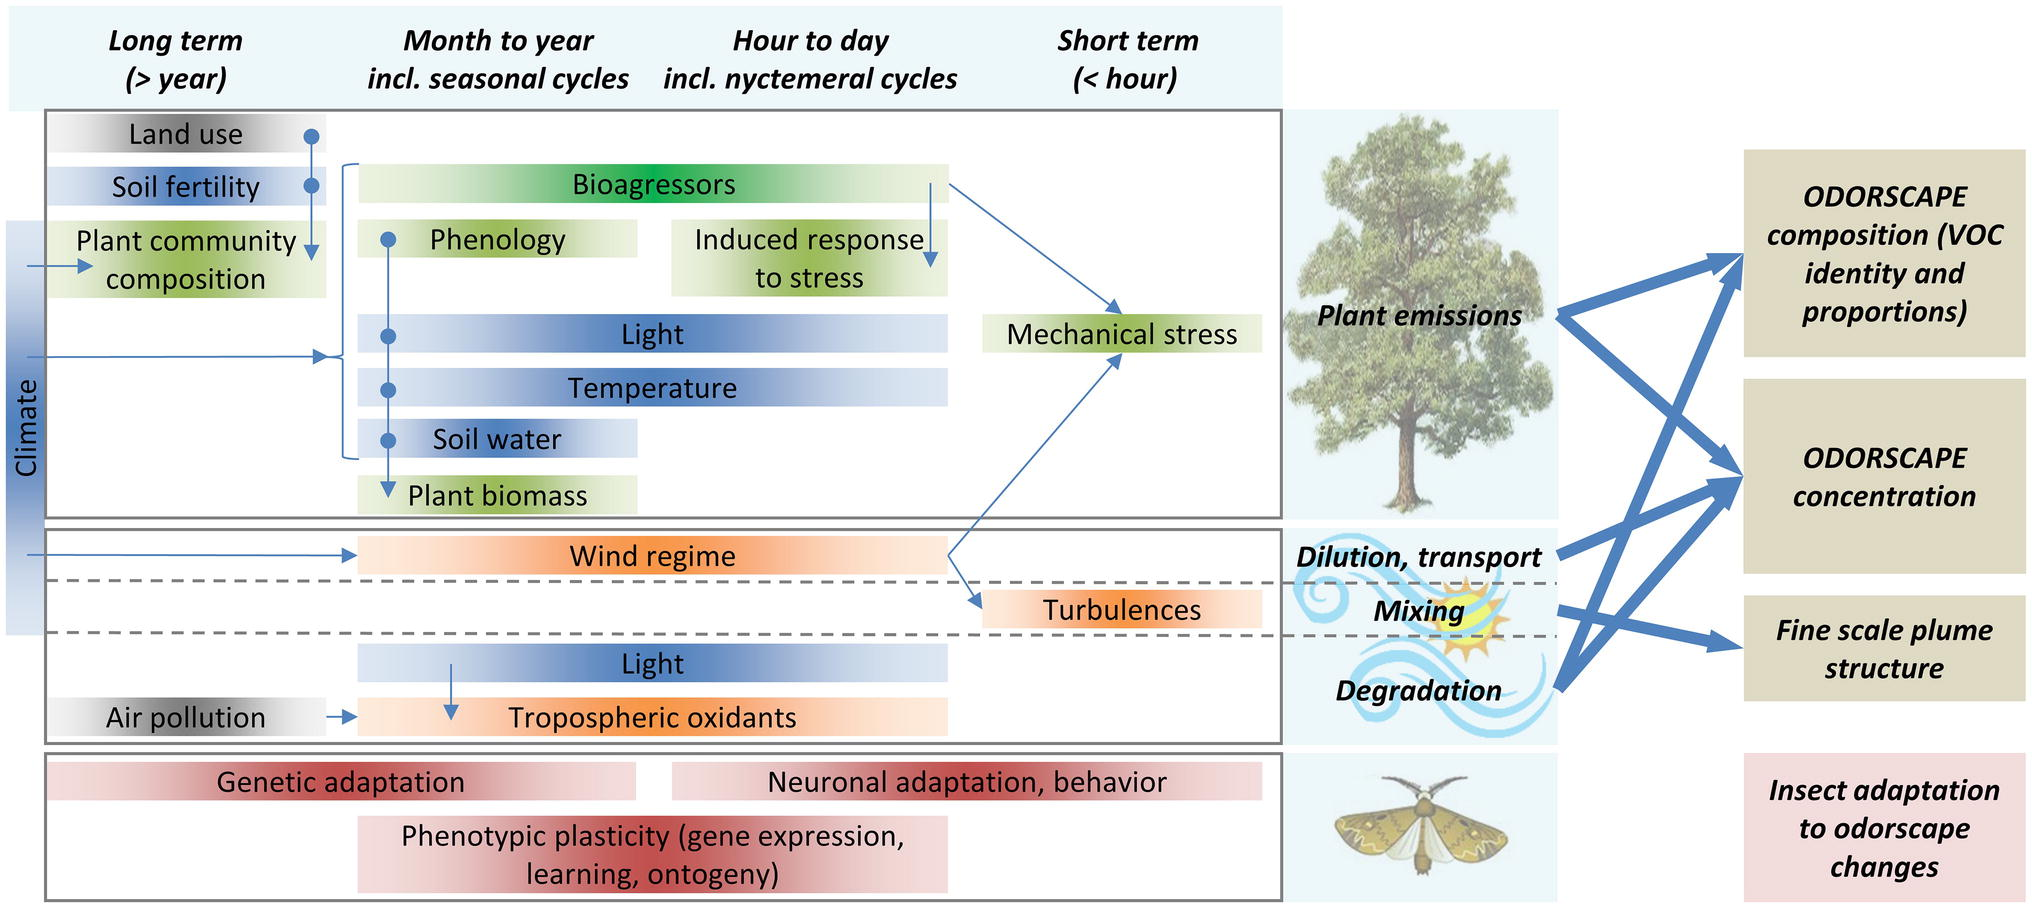 Frontiers | Insect Odorscapes: From Plant Volatiles to